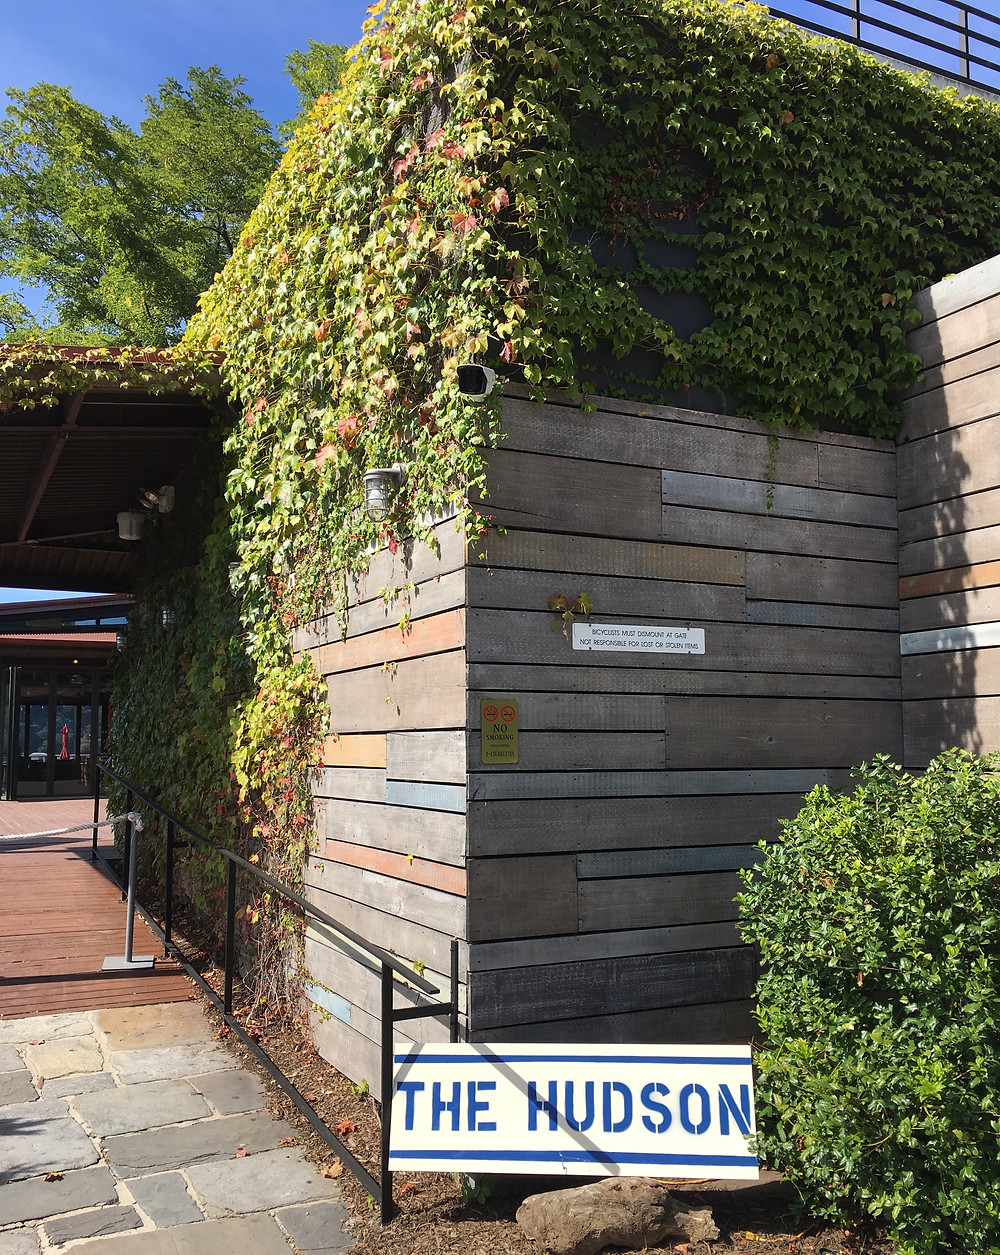 The Hudson, a restaurant from the owner of the Brother Jimmy's restaurant chain, has opened in the old La Marina space in Inwood